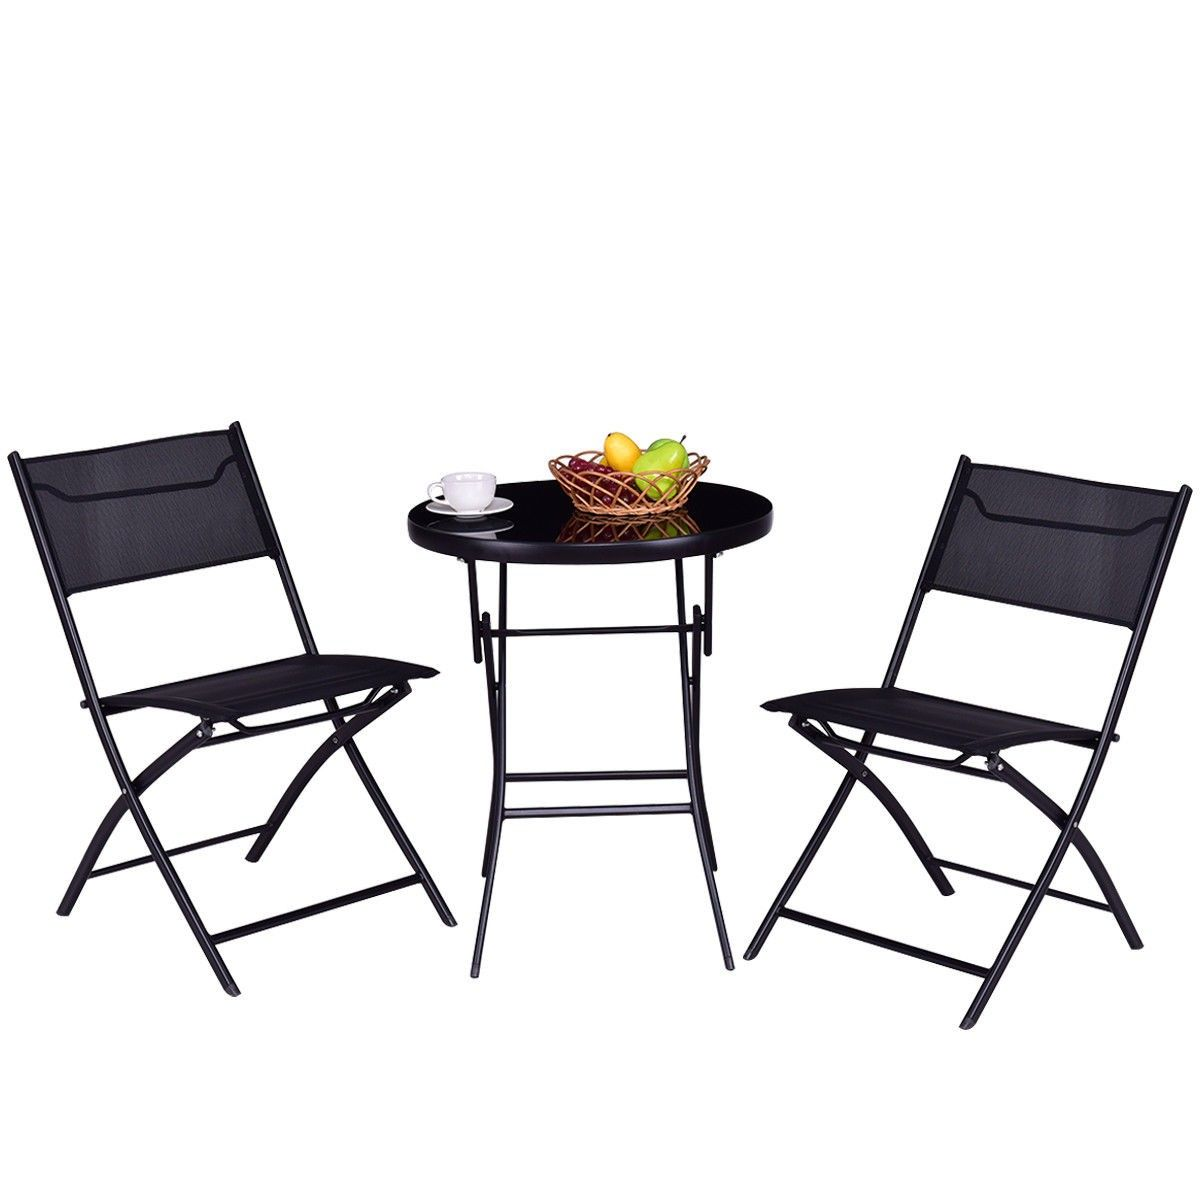 Outdoor Patio 3 Pieces Folding Round Table And Chair Suit Set